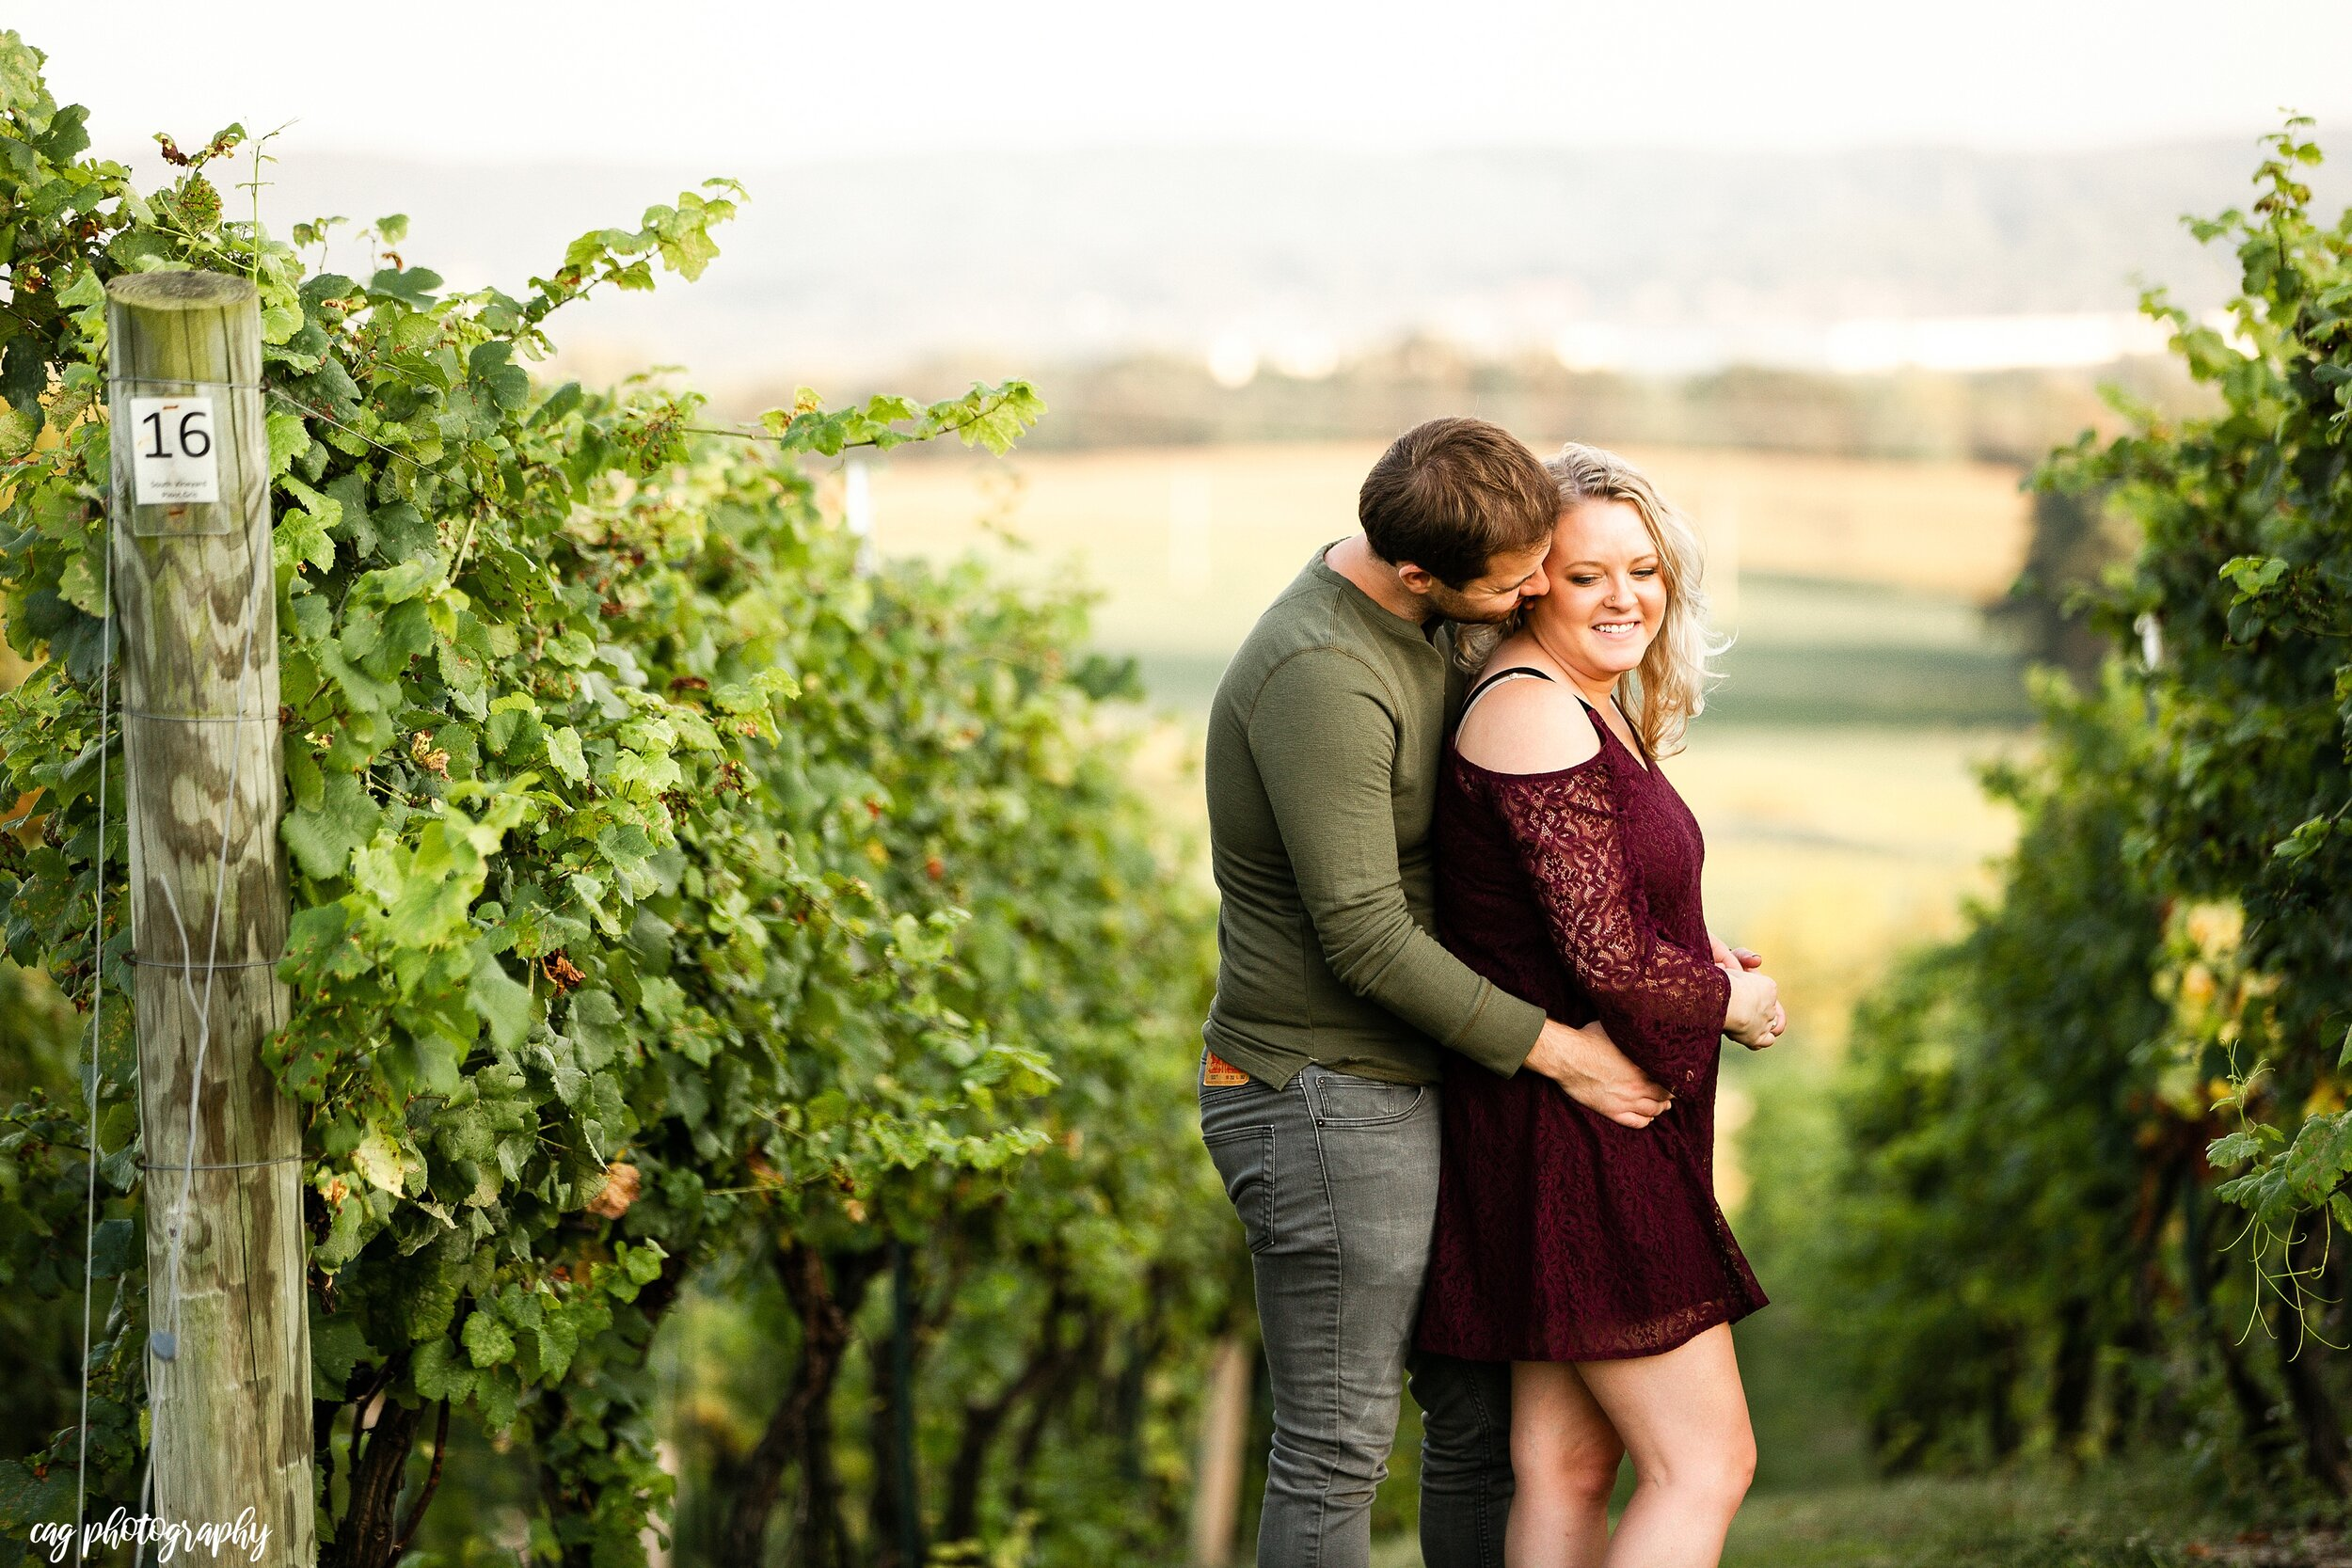 Nicole+Matt ENGAGED-68.jpg